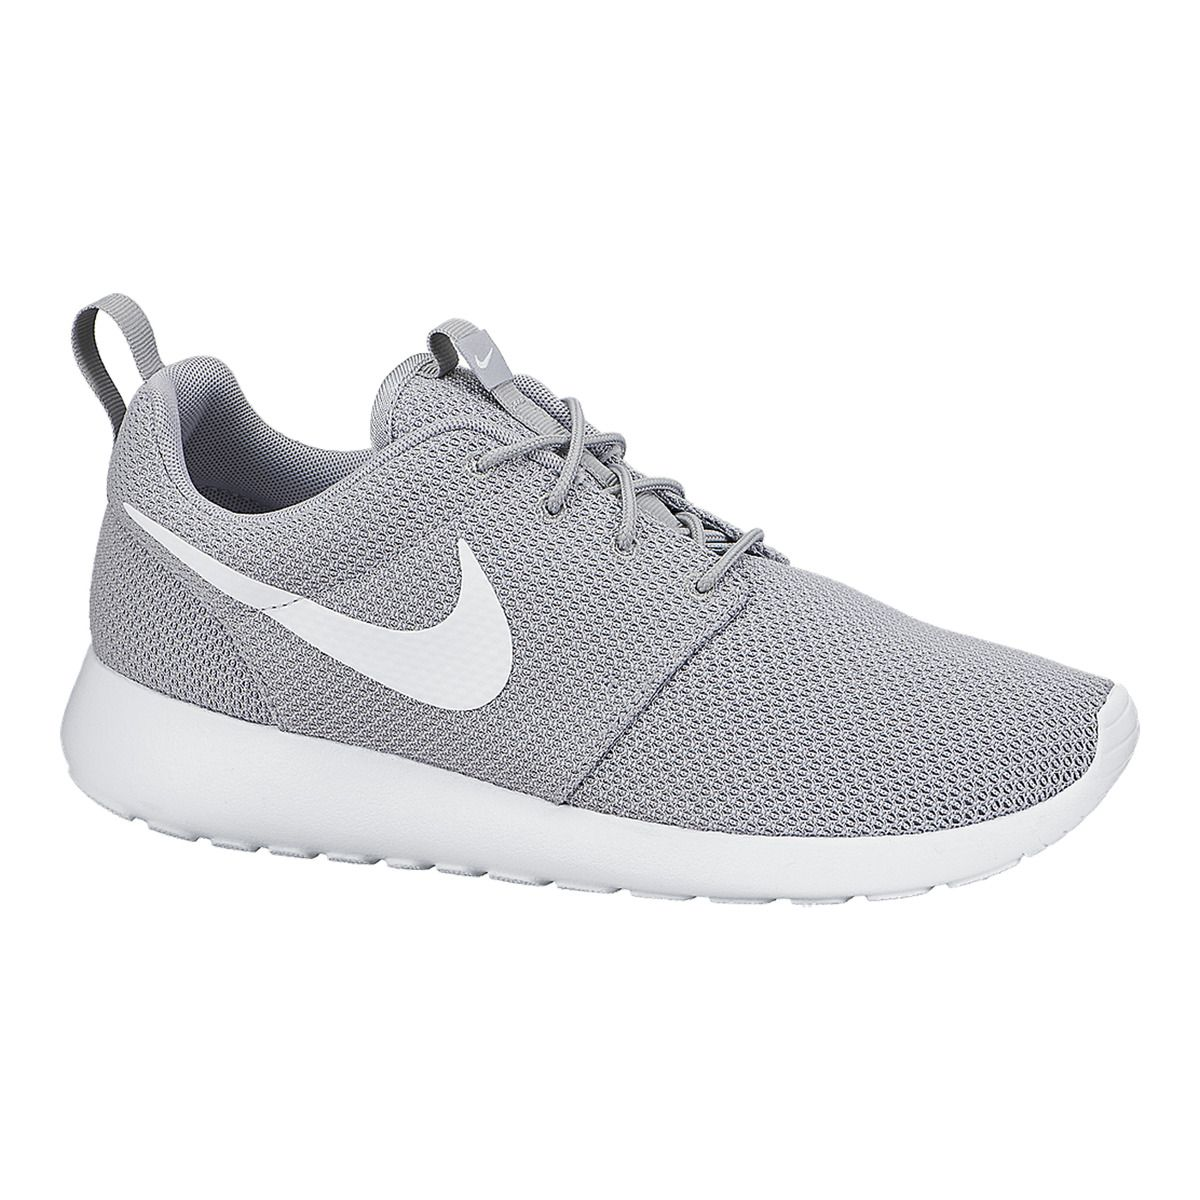 differently ac7f3 754b5 Zapatillas casual de hombre Roshe One Nike